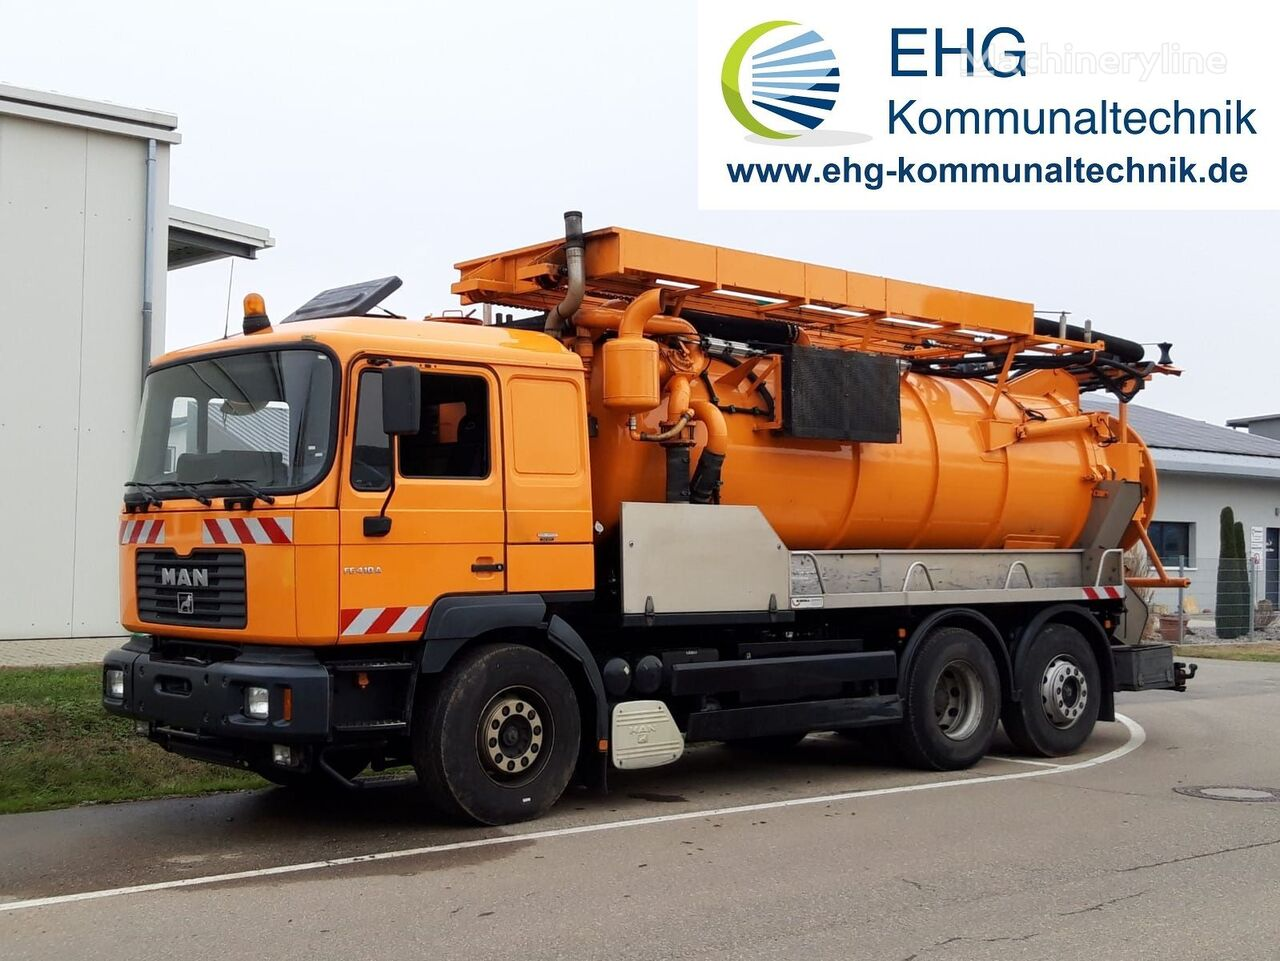 MAN F2001 26.414 combination sewer cleaner